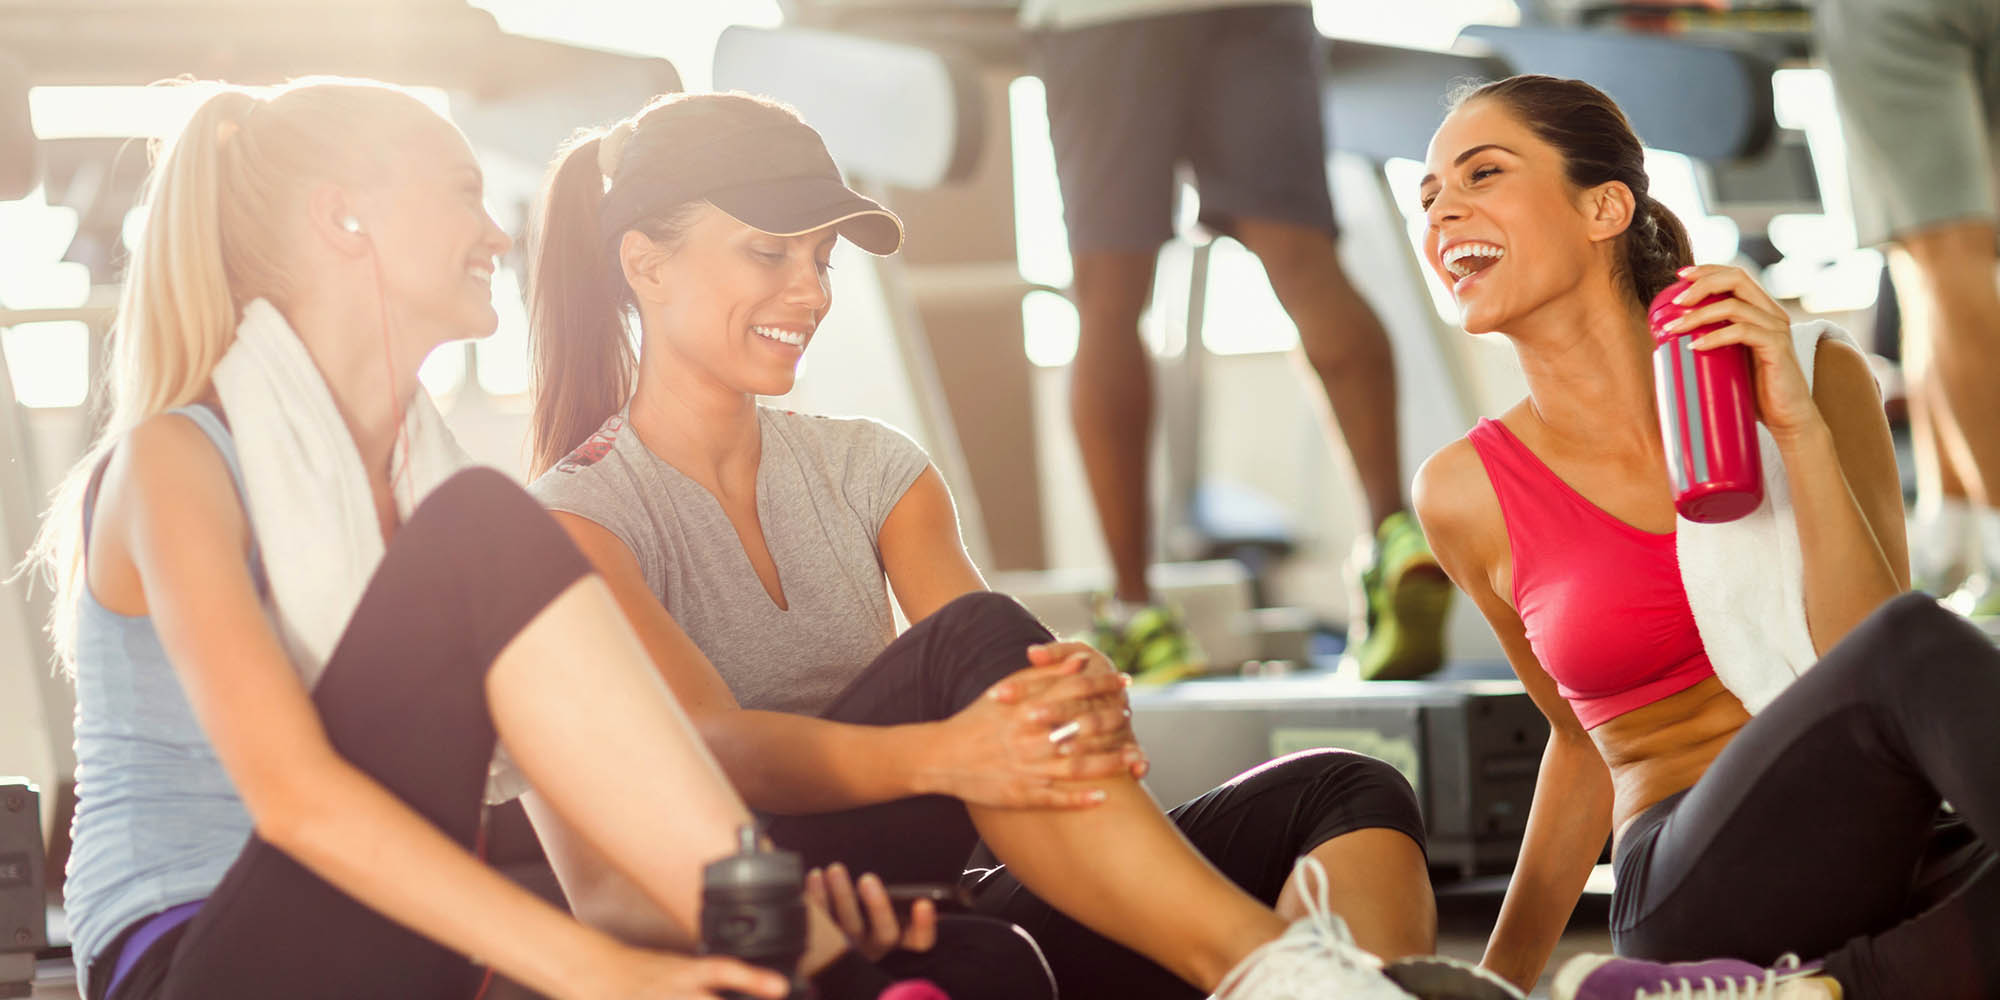 The Funny Fitness Glossary